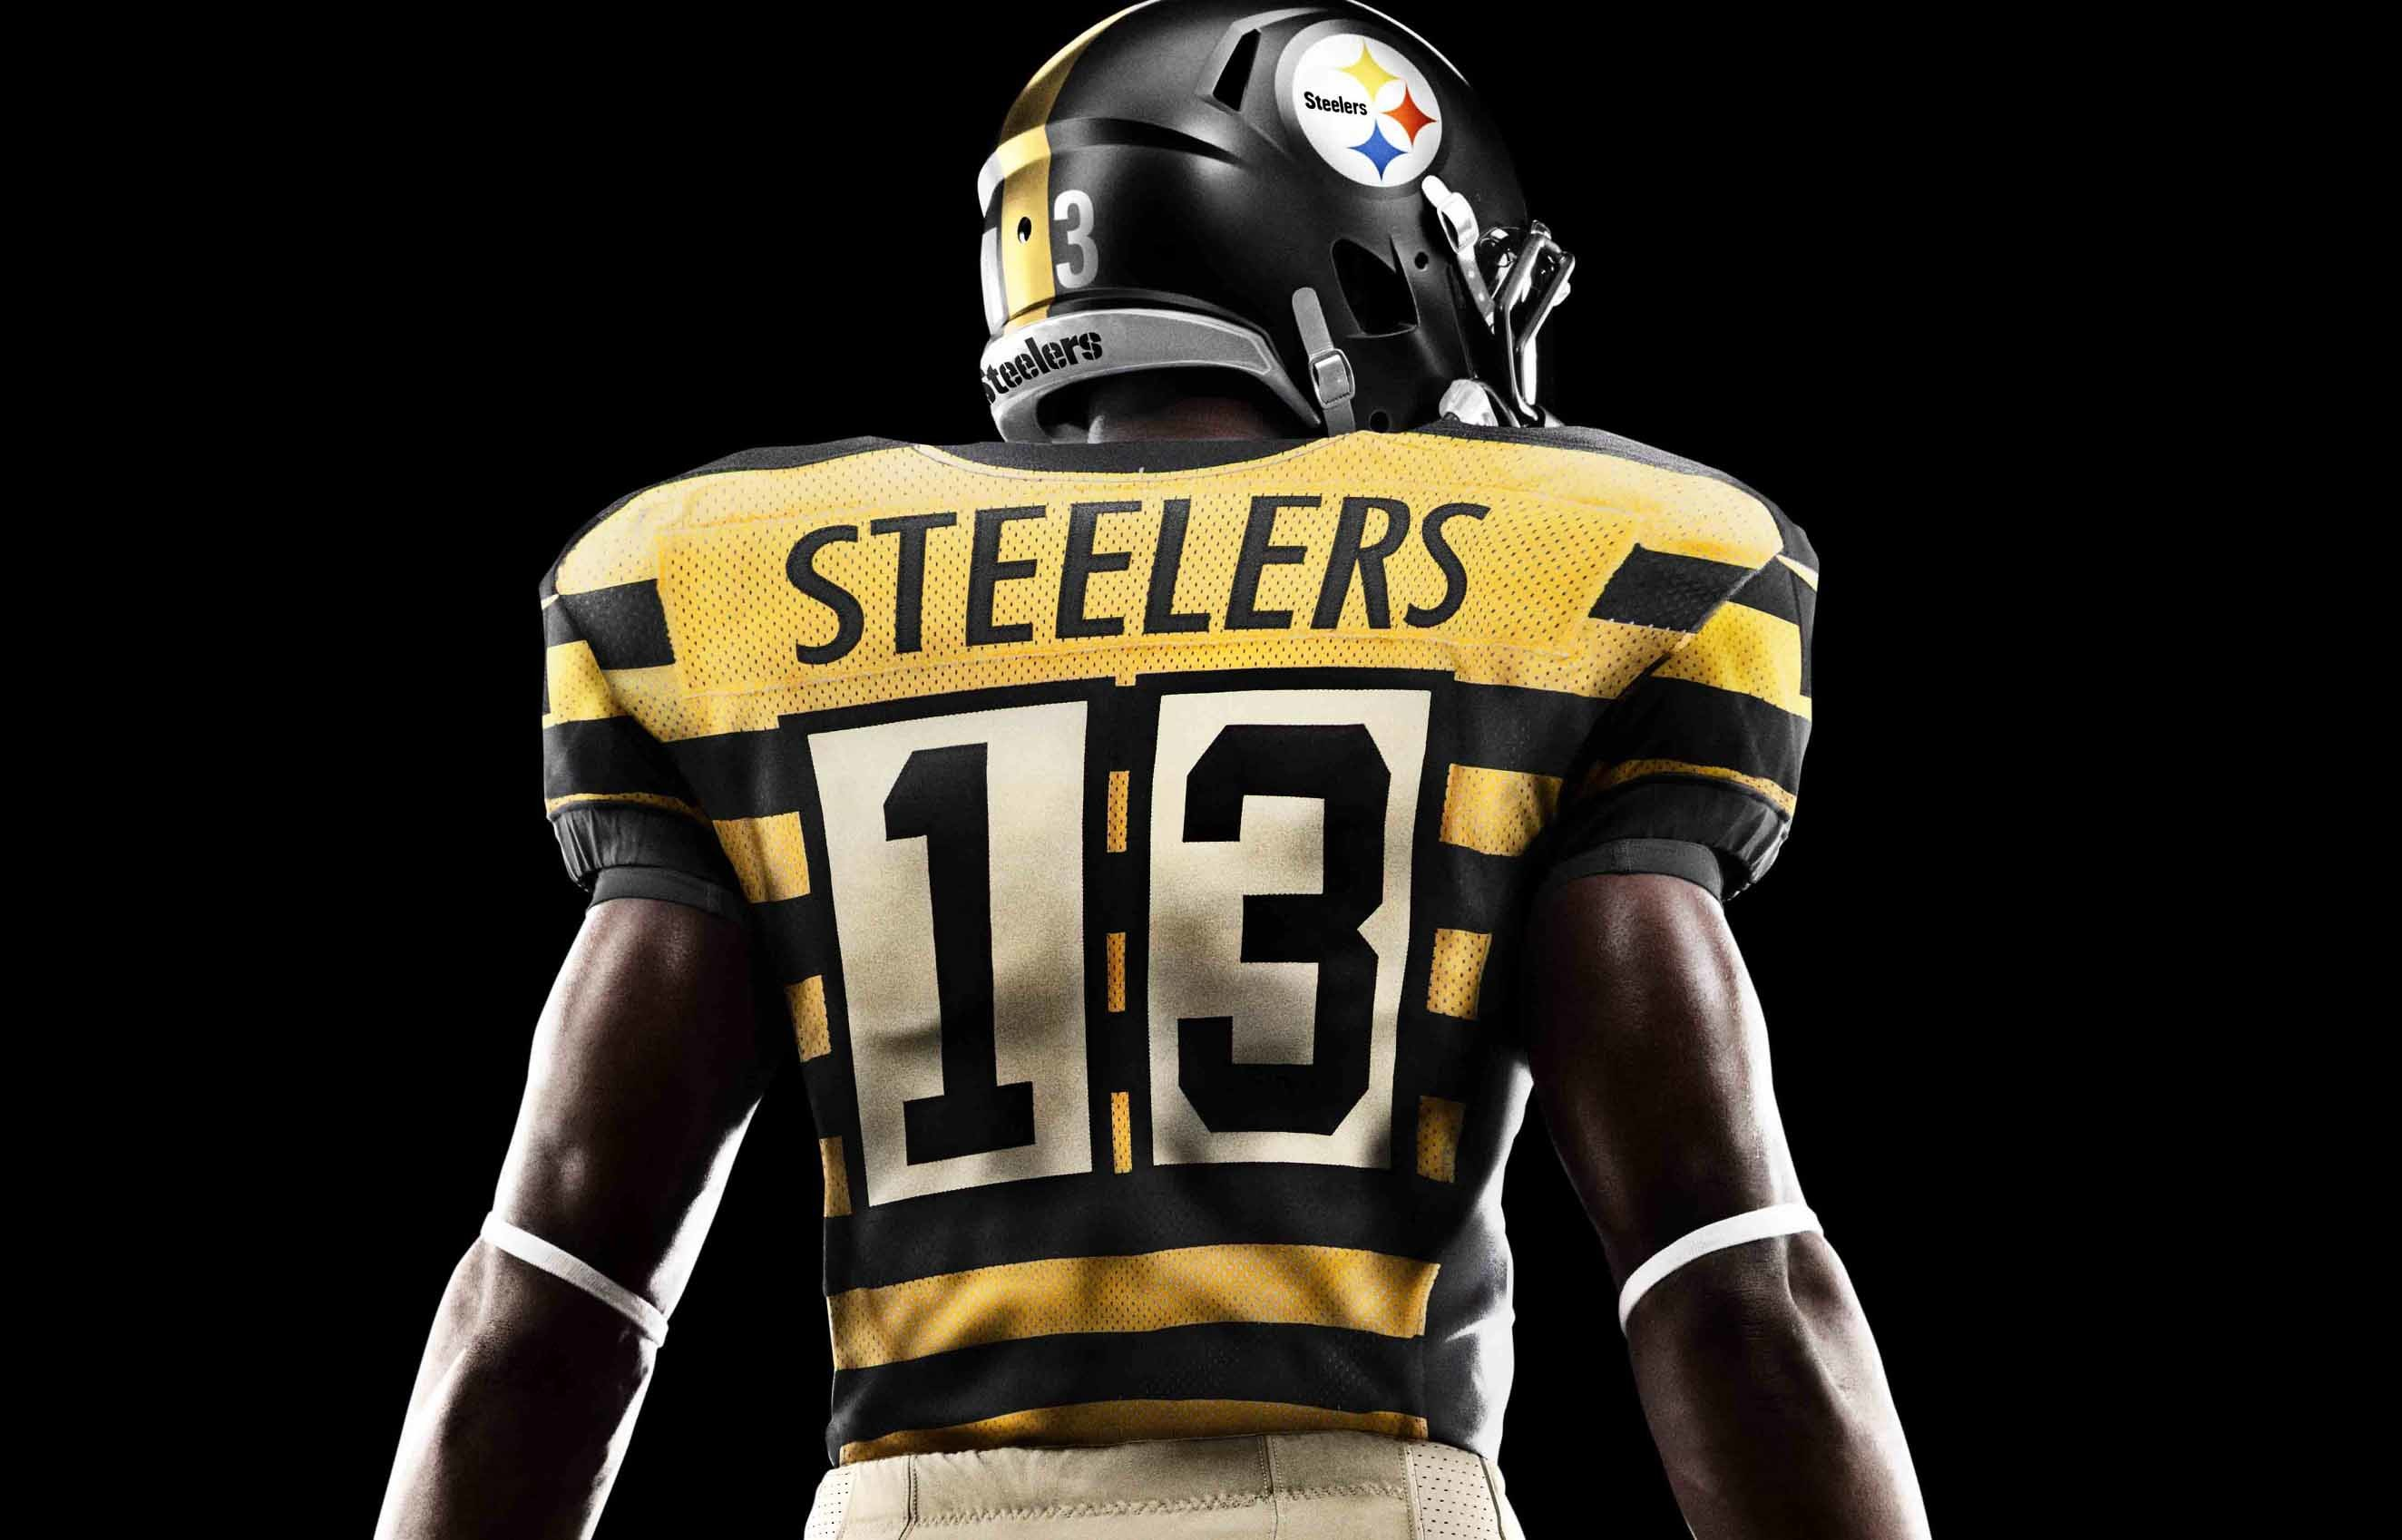 2648x1698 ... nfl football wallpapers; pittsburgh steelers football wallpapers wallpaper cave .